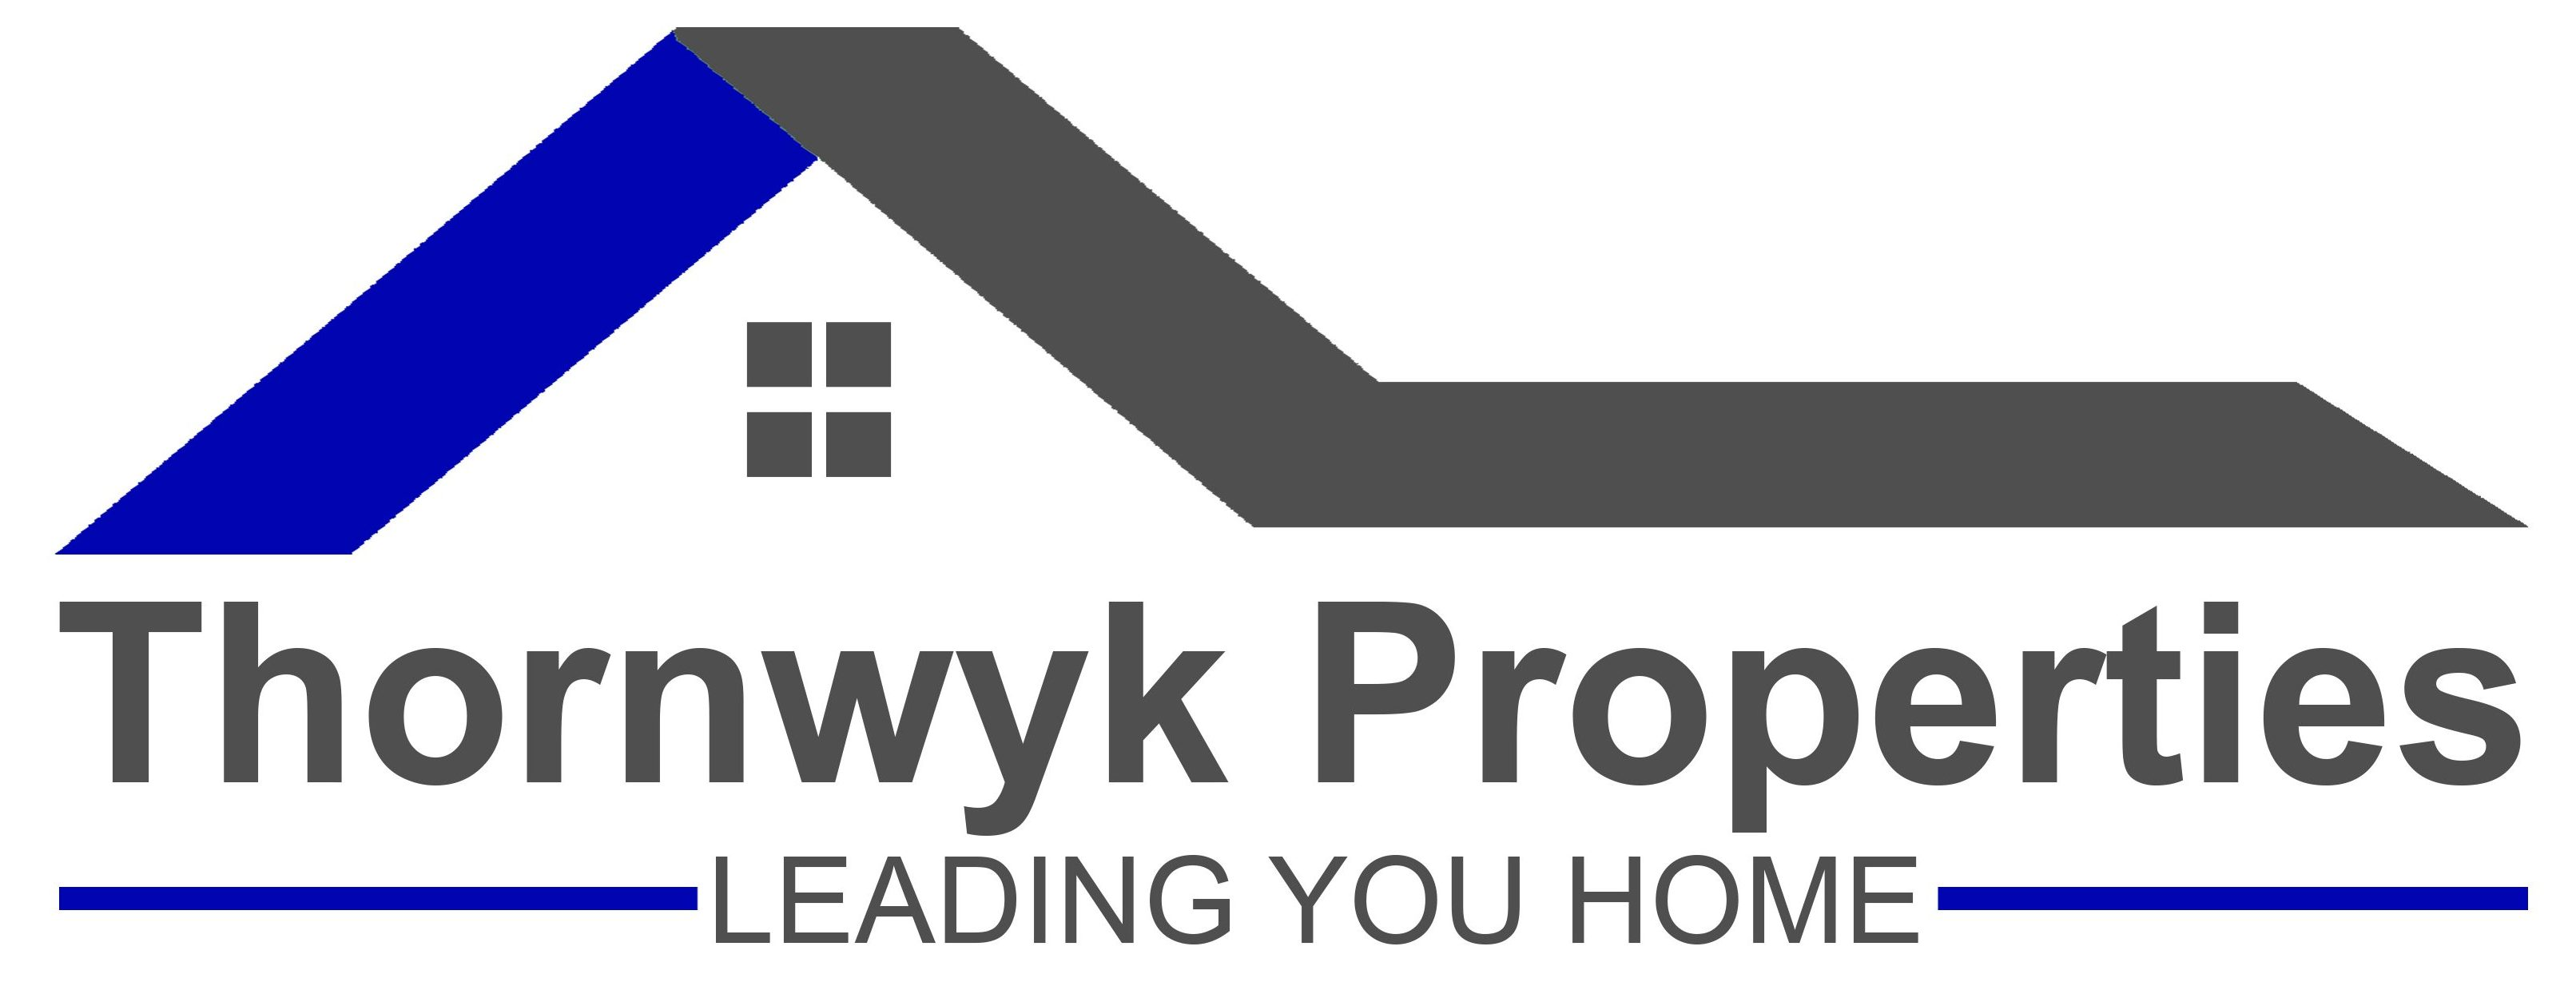 Thornwyk Properties